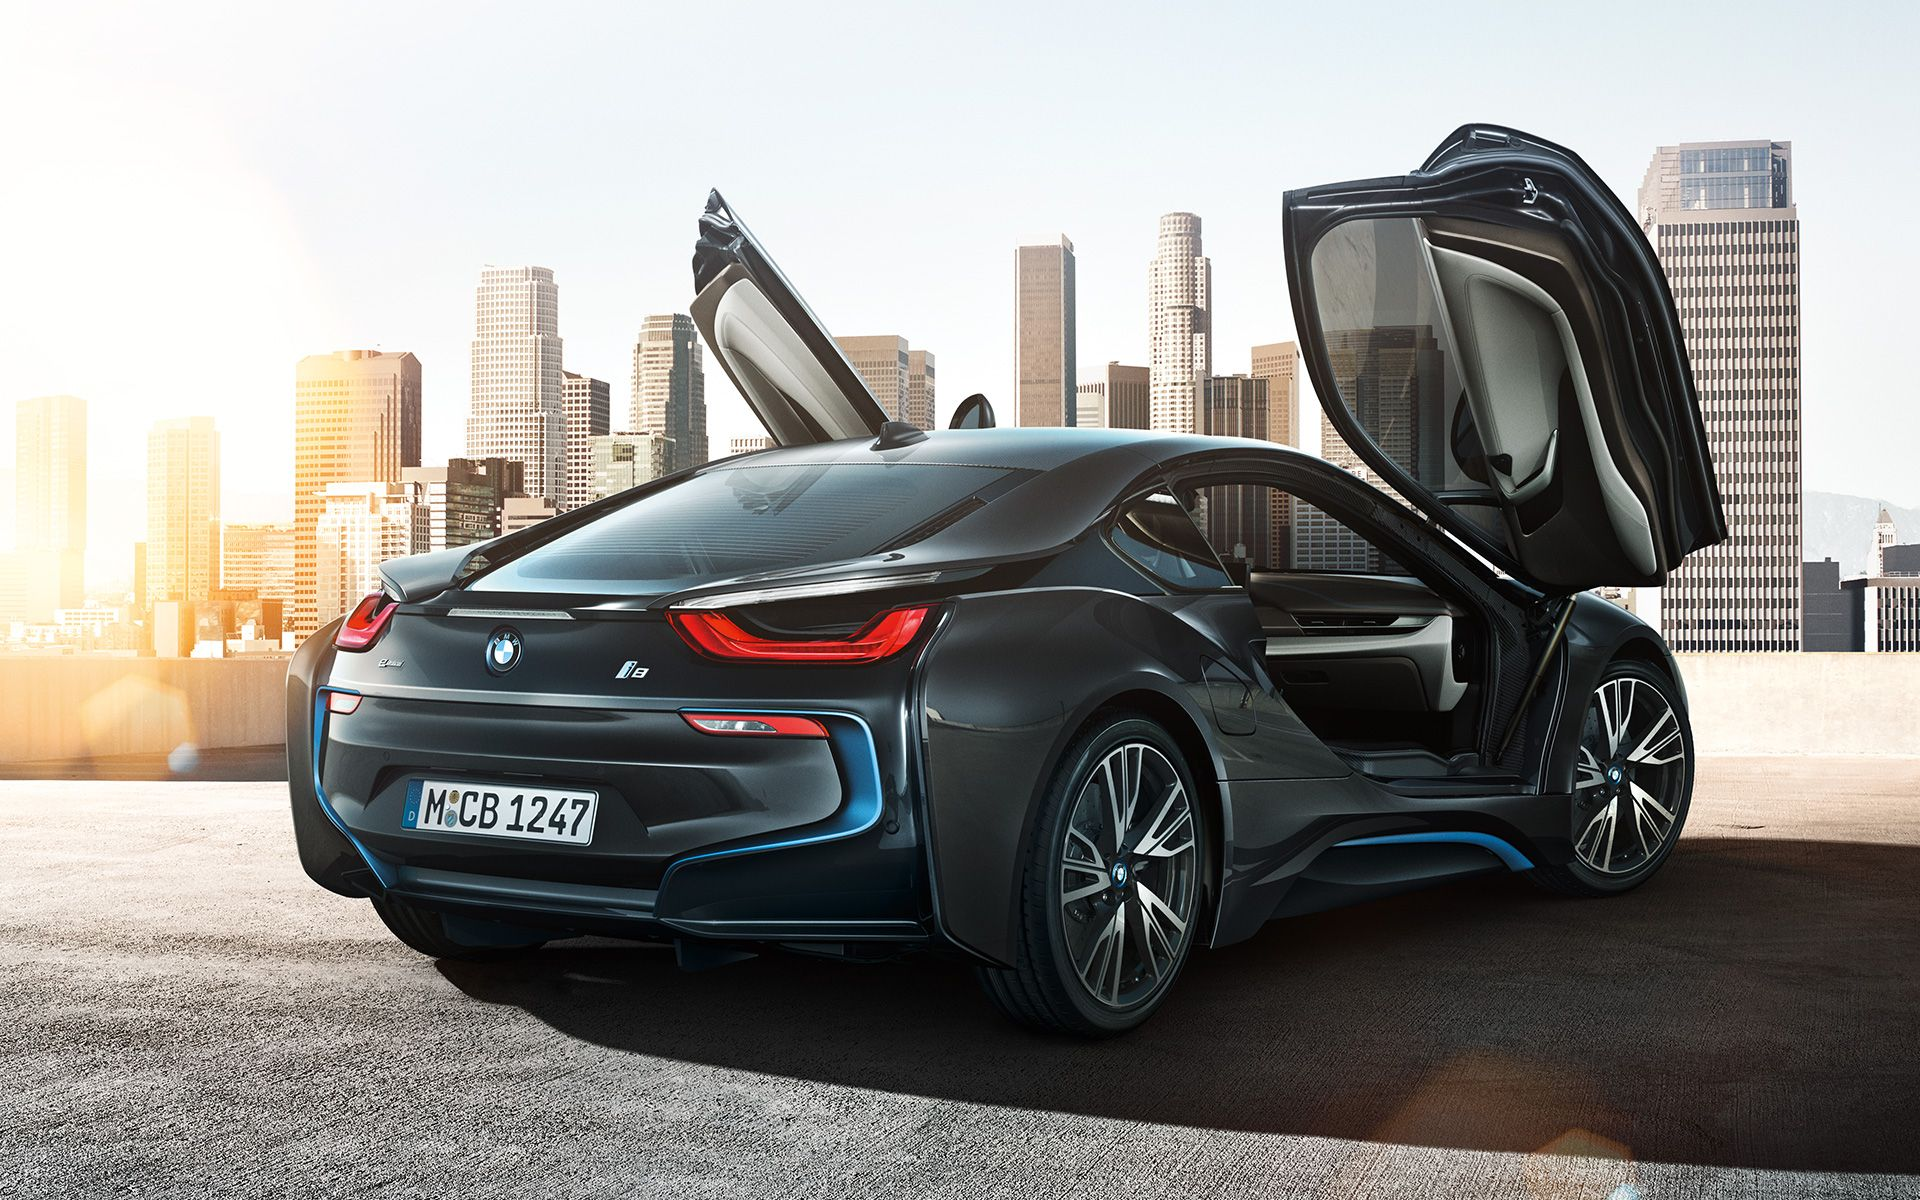 bmw i8 - from this link: http://www.bmw/com/en/newvehicles/i